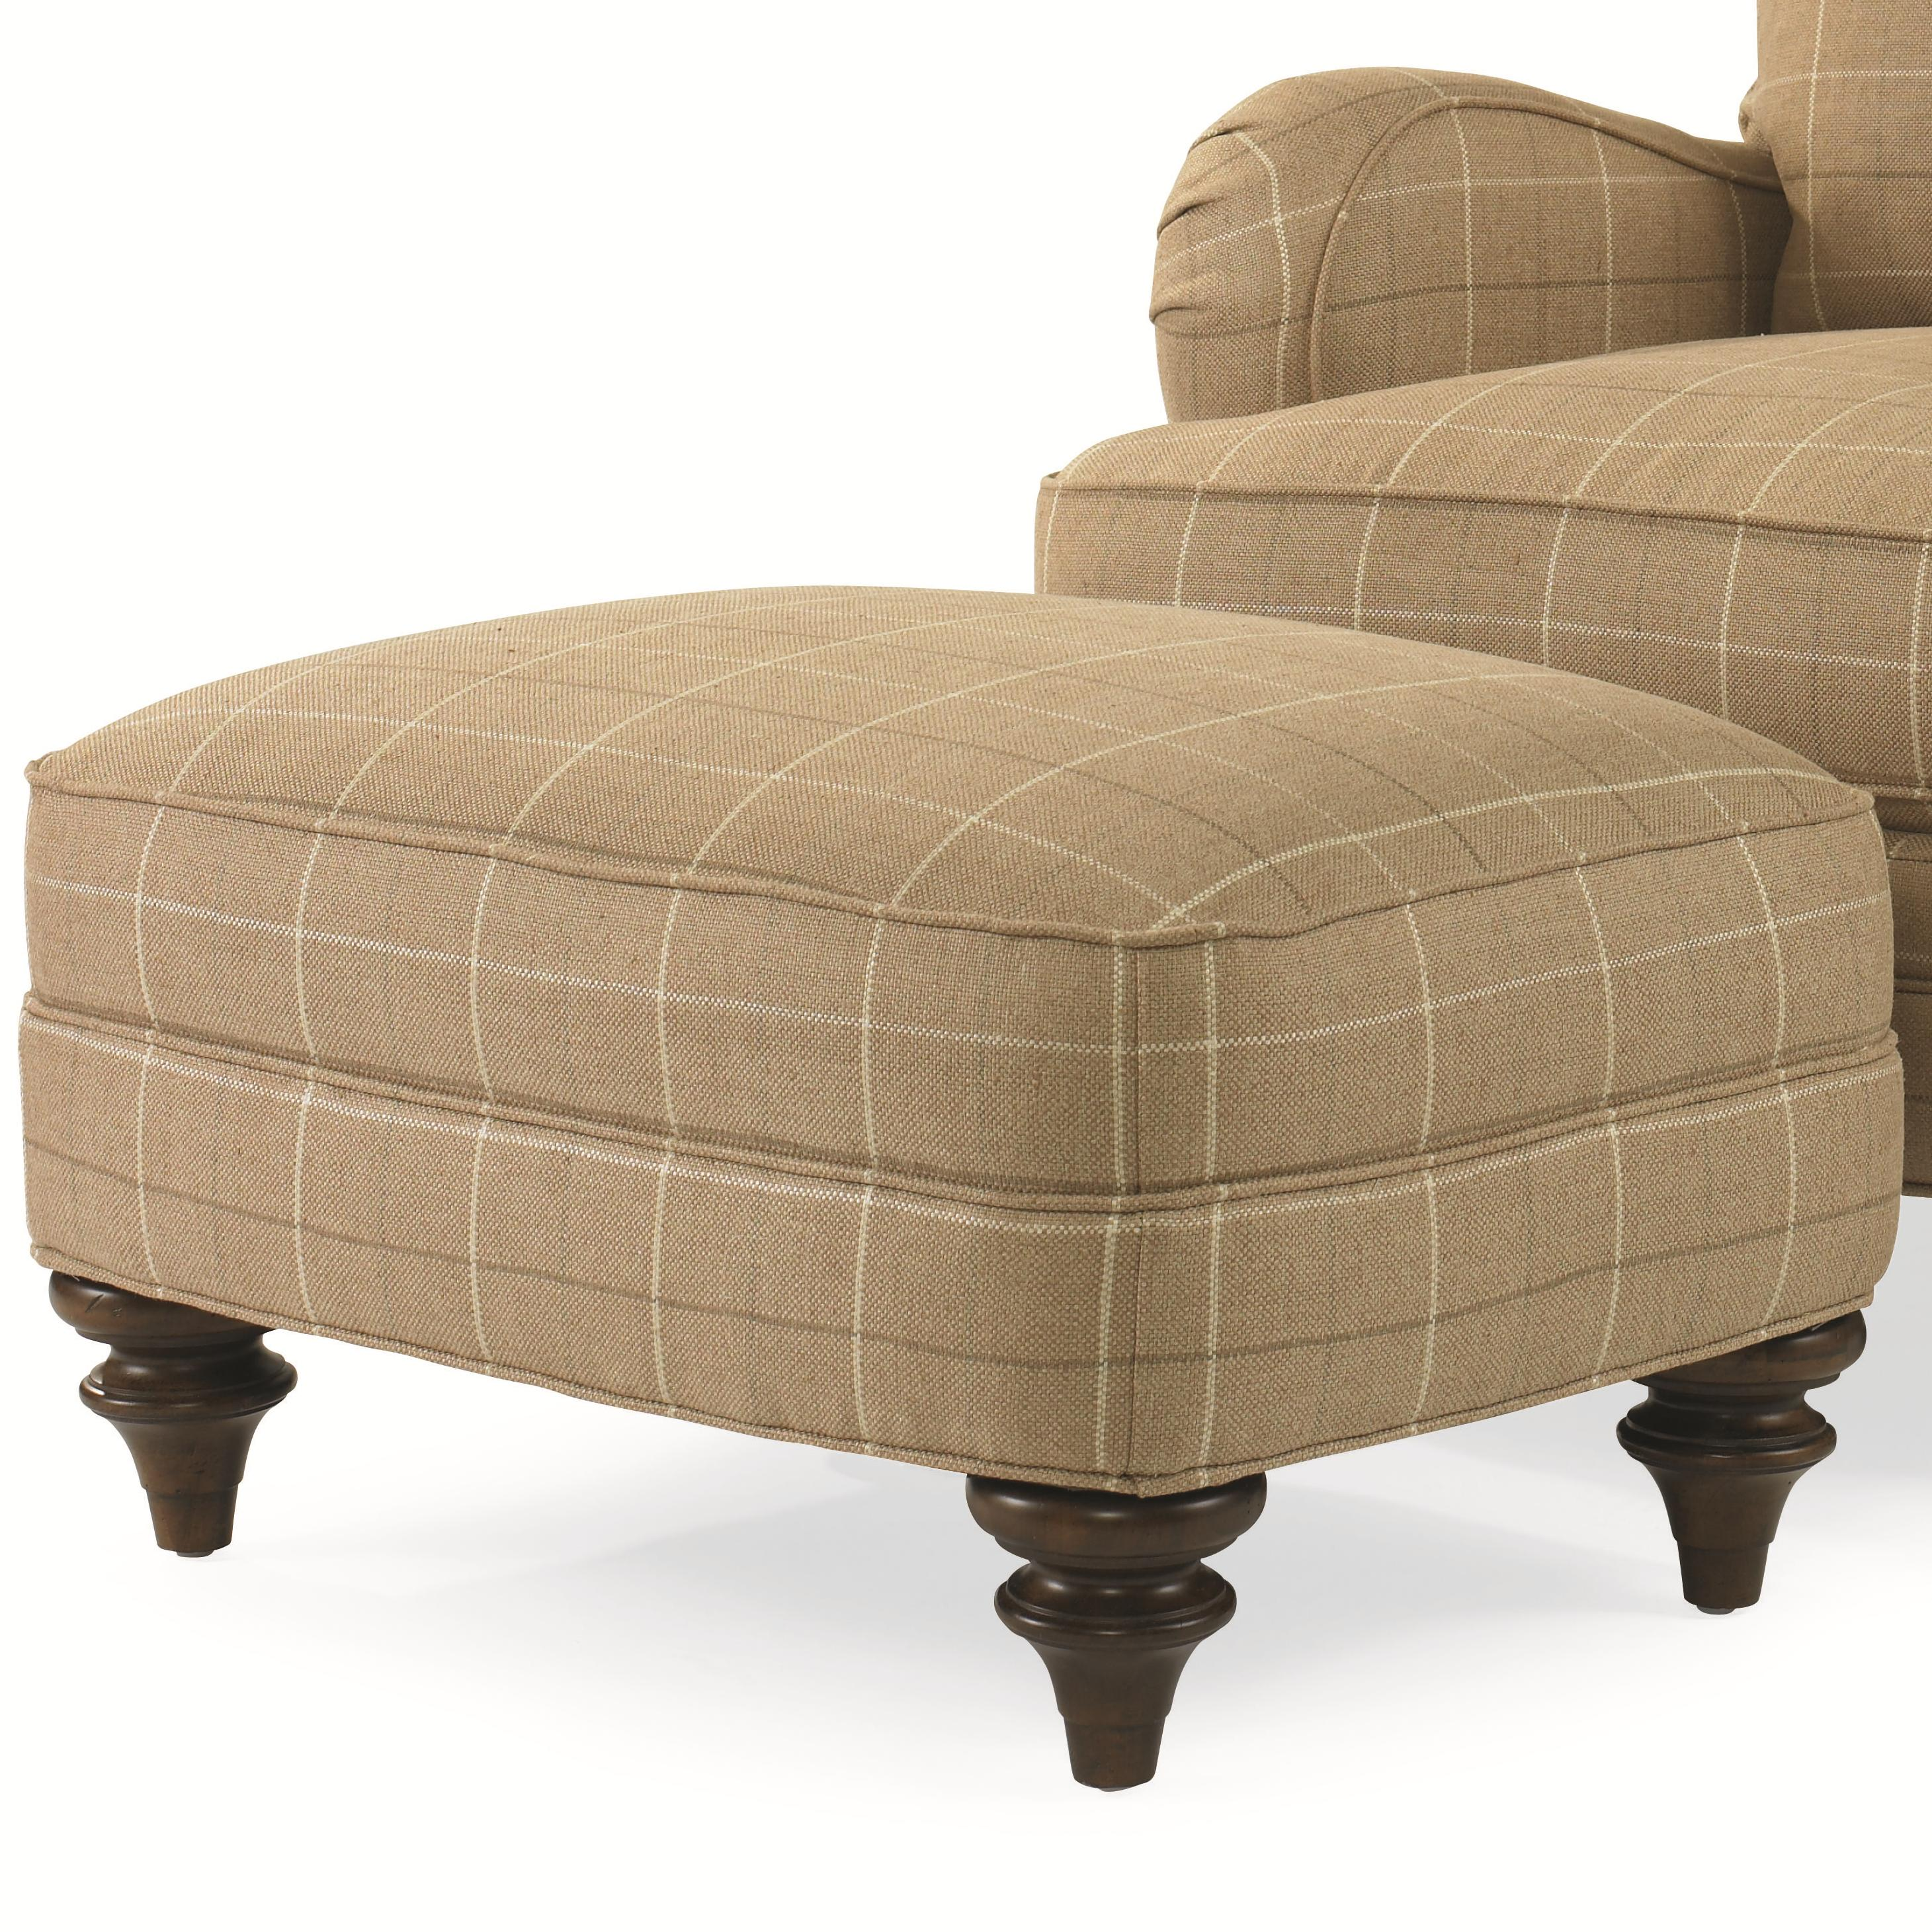 Elegance  Kent Ottoman by Century at Baer's Furniture